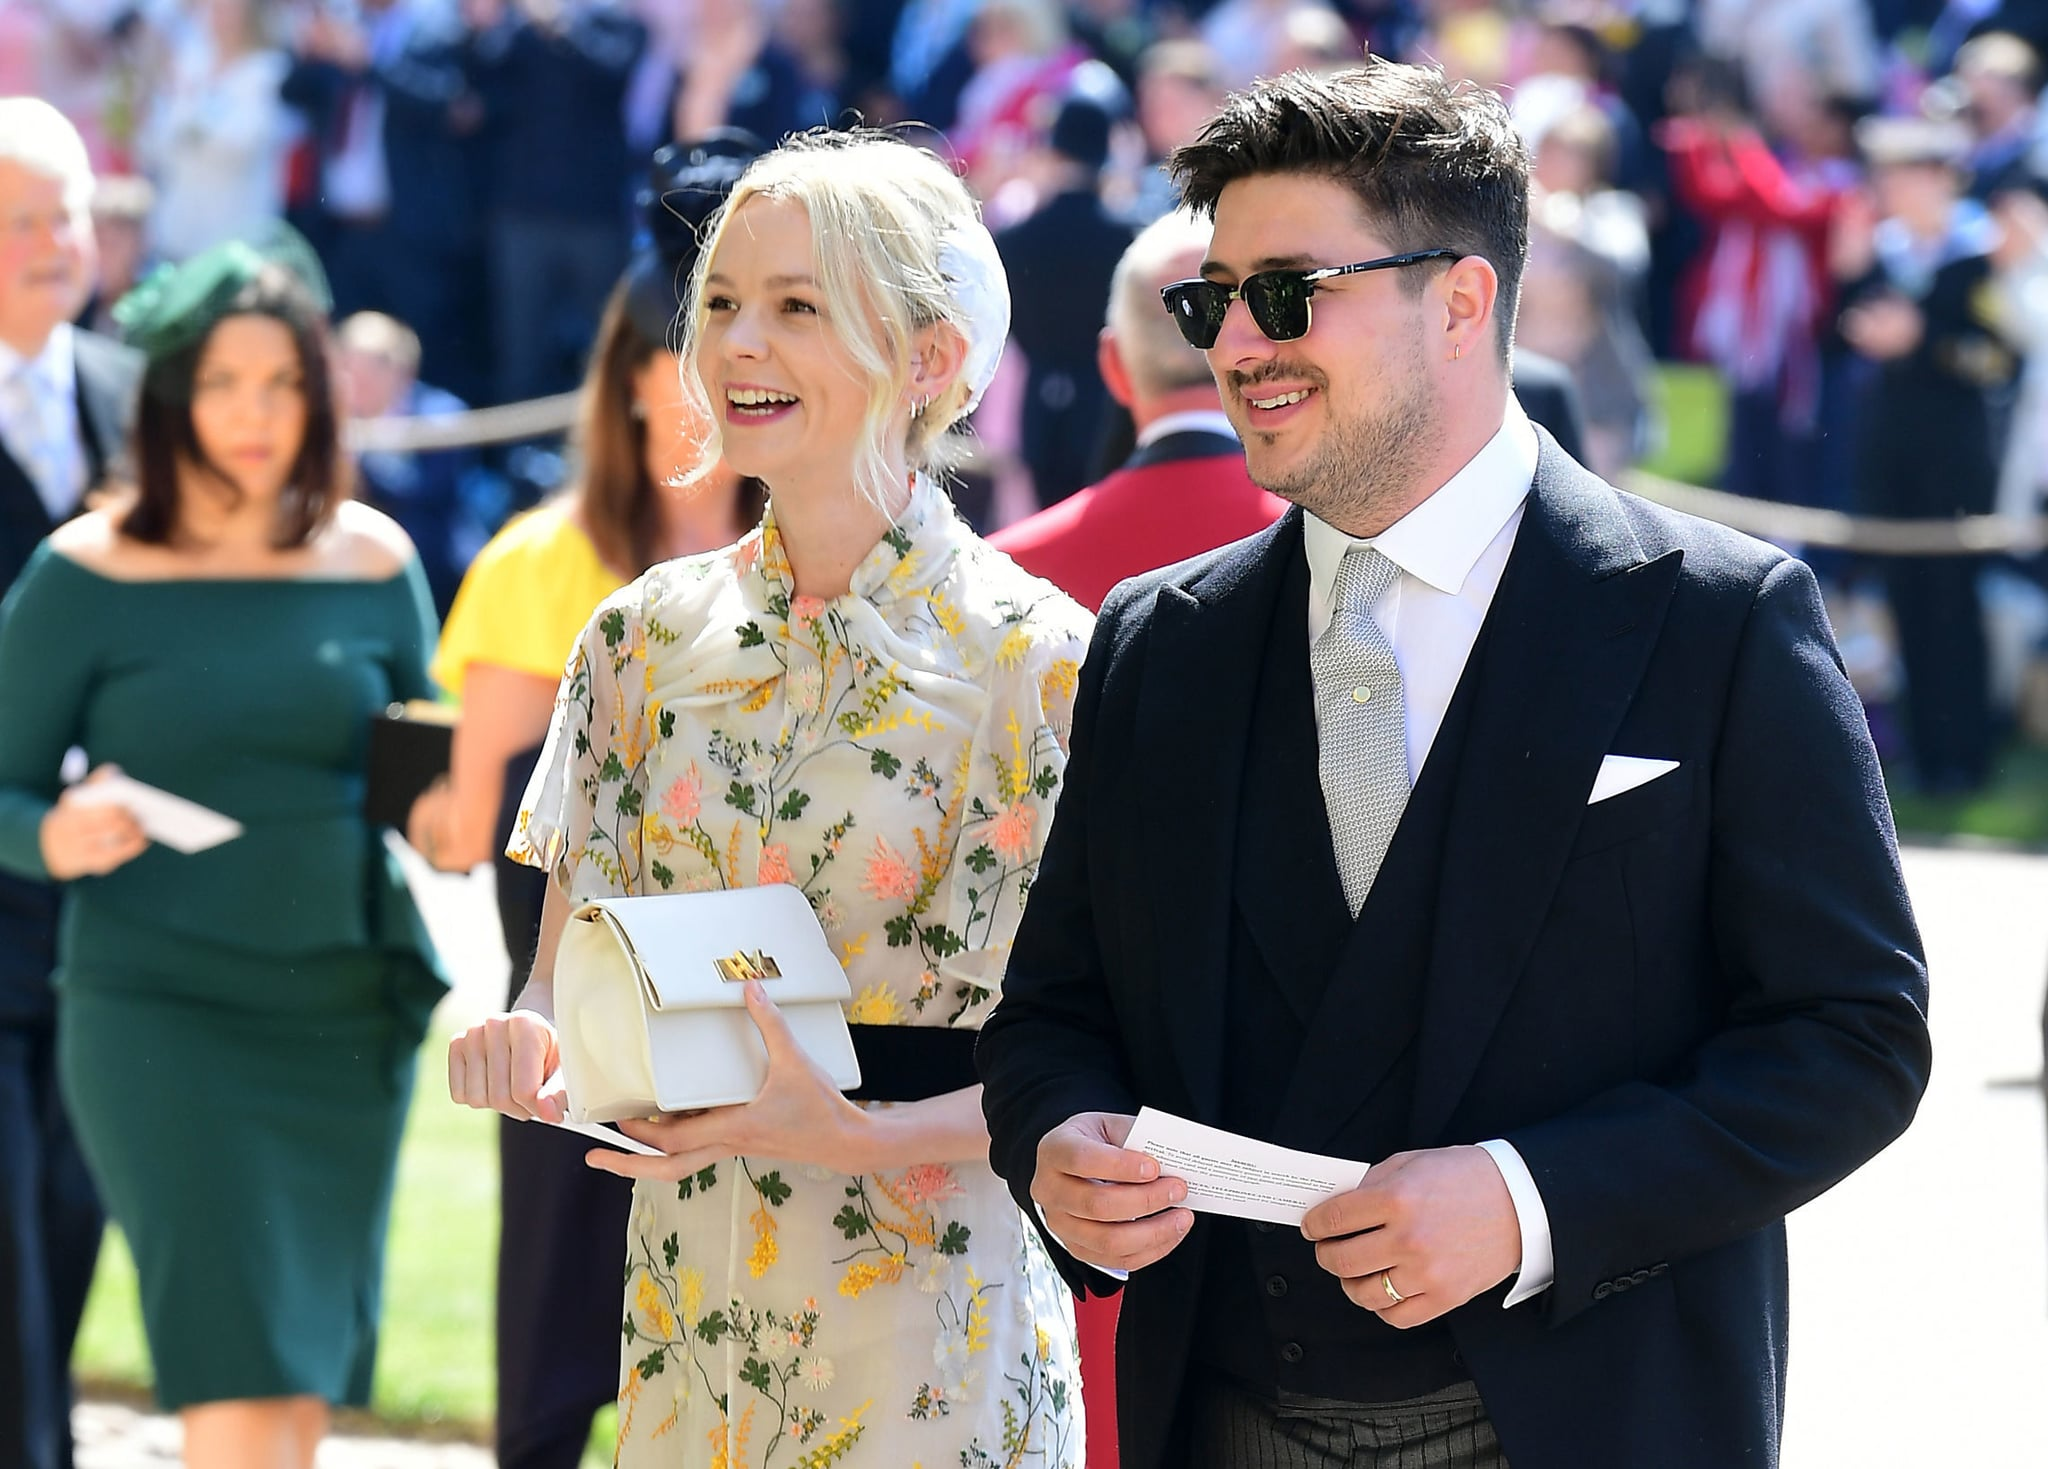 British musician Marcus Mumford and British actor Carey Mulligan arrive for the wedding ceremony of Britain's Prince Harry, Duke of Sussex and US actress Meghan Markle at St George's Chapel, Windsor Castle, in Windsor, on May 19, 2018. (Photo by Ian West / POOL / AFP)        (Photo credit should read IAN WEST/AFP via Getty Images)